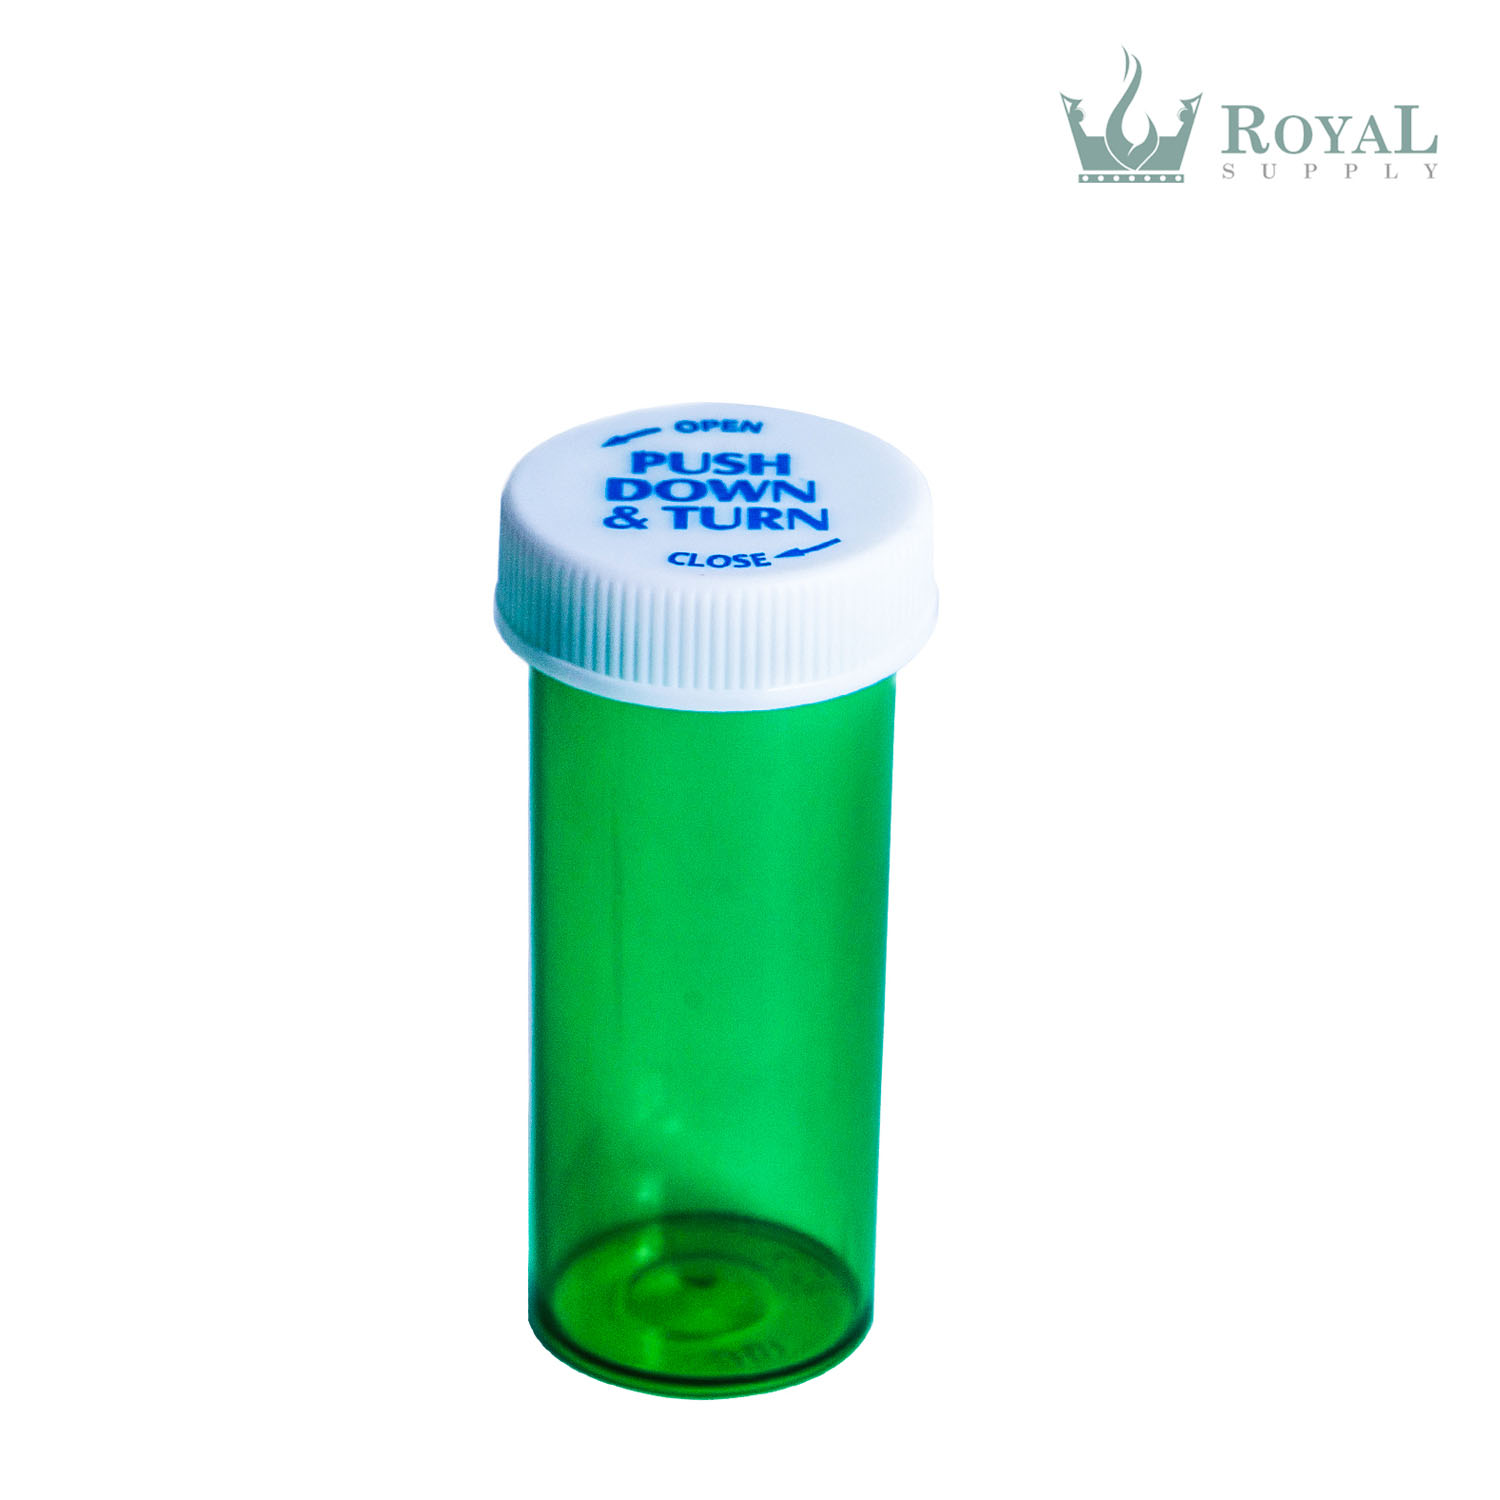 8 Dram High Quality Translucent Child Resistant Push and Turn Vials